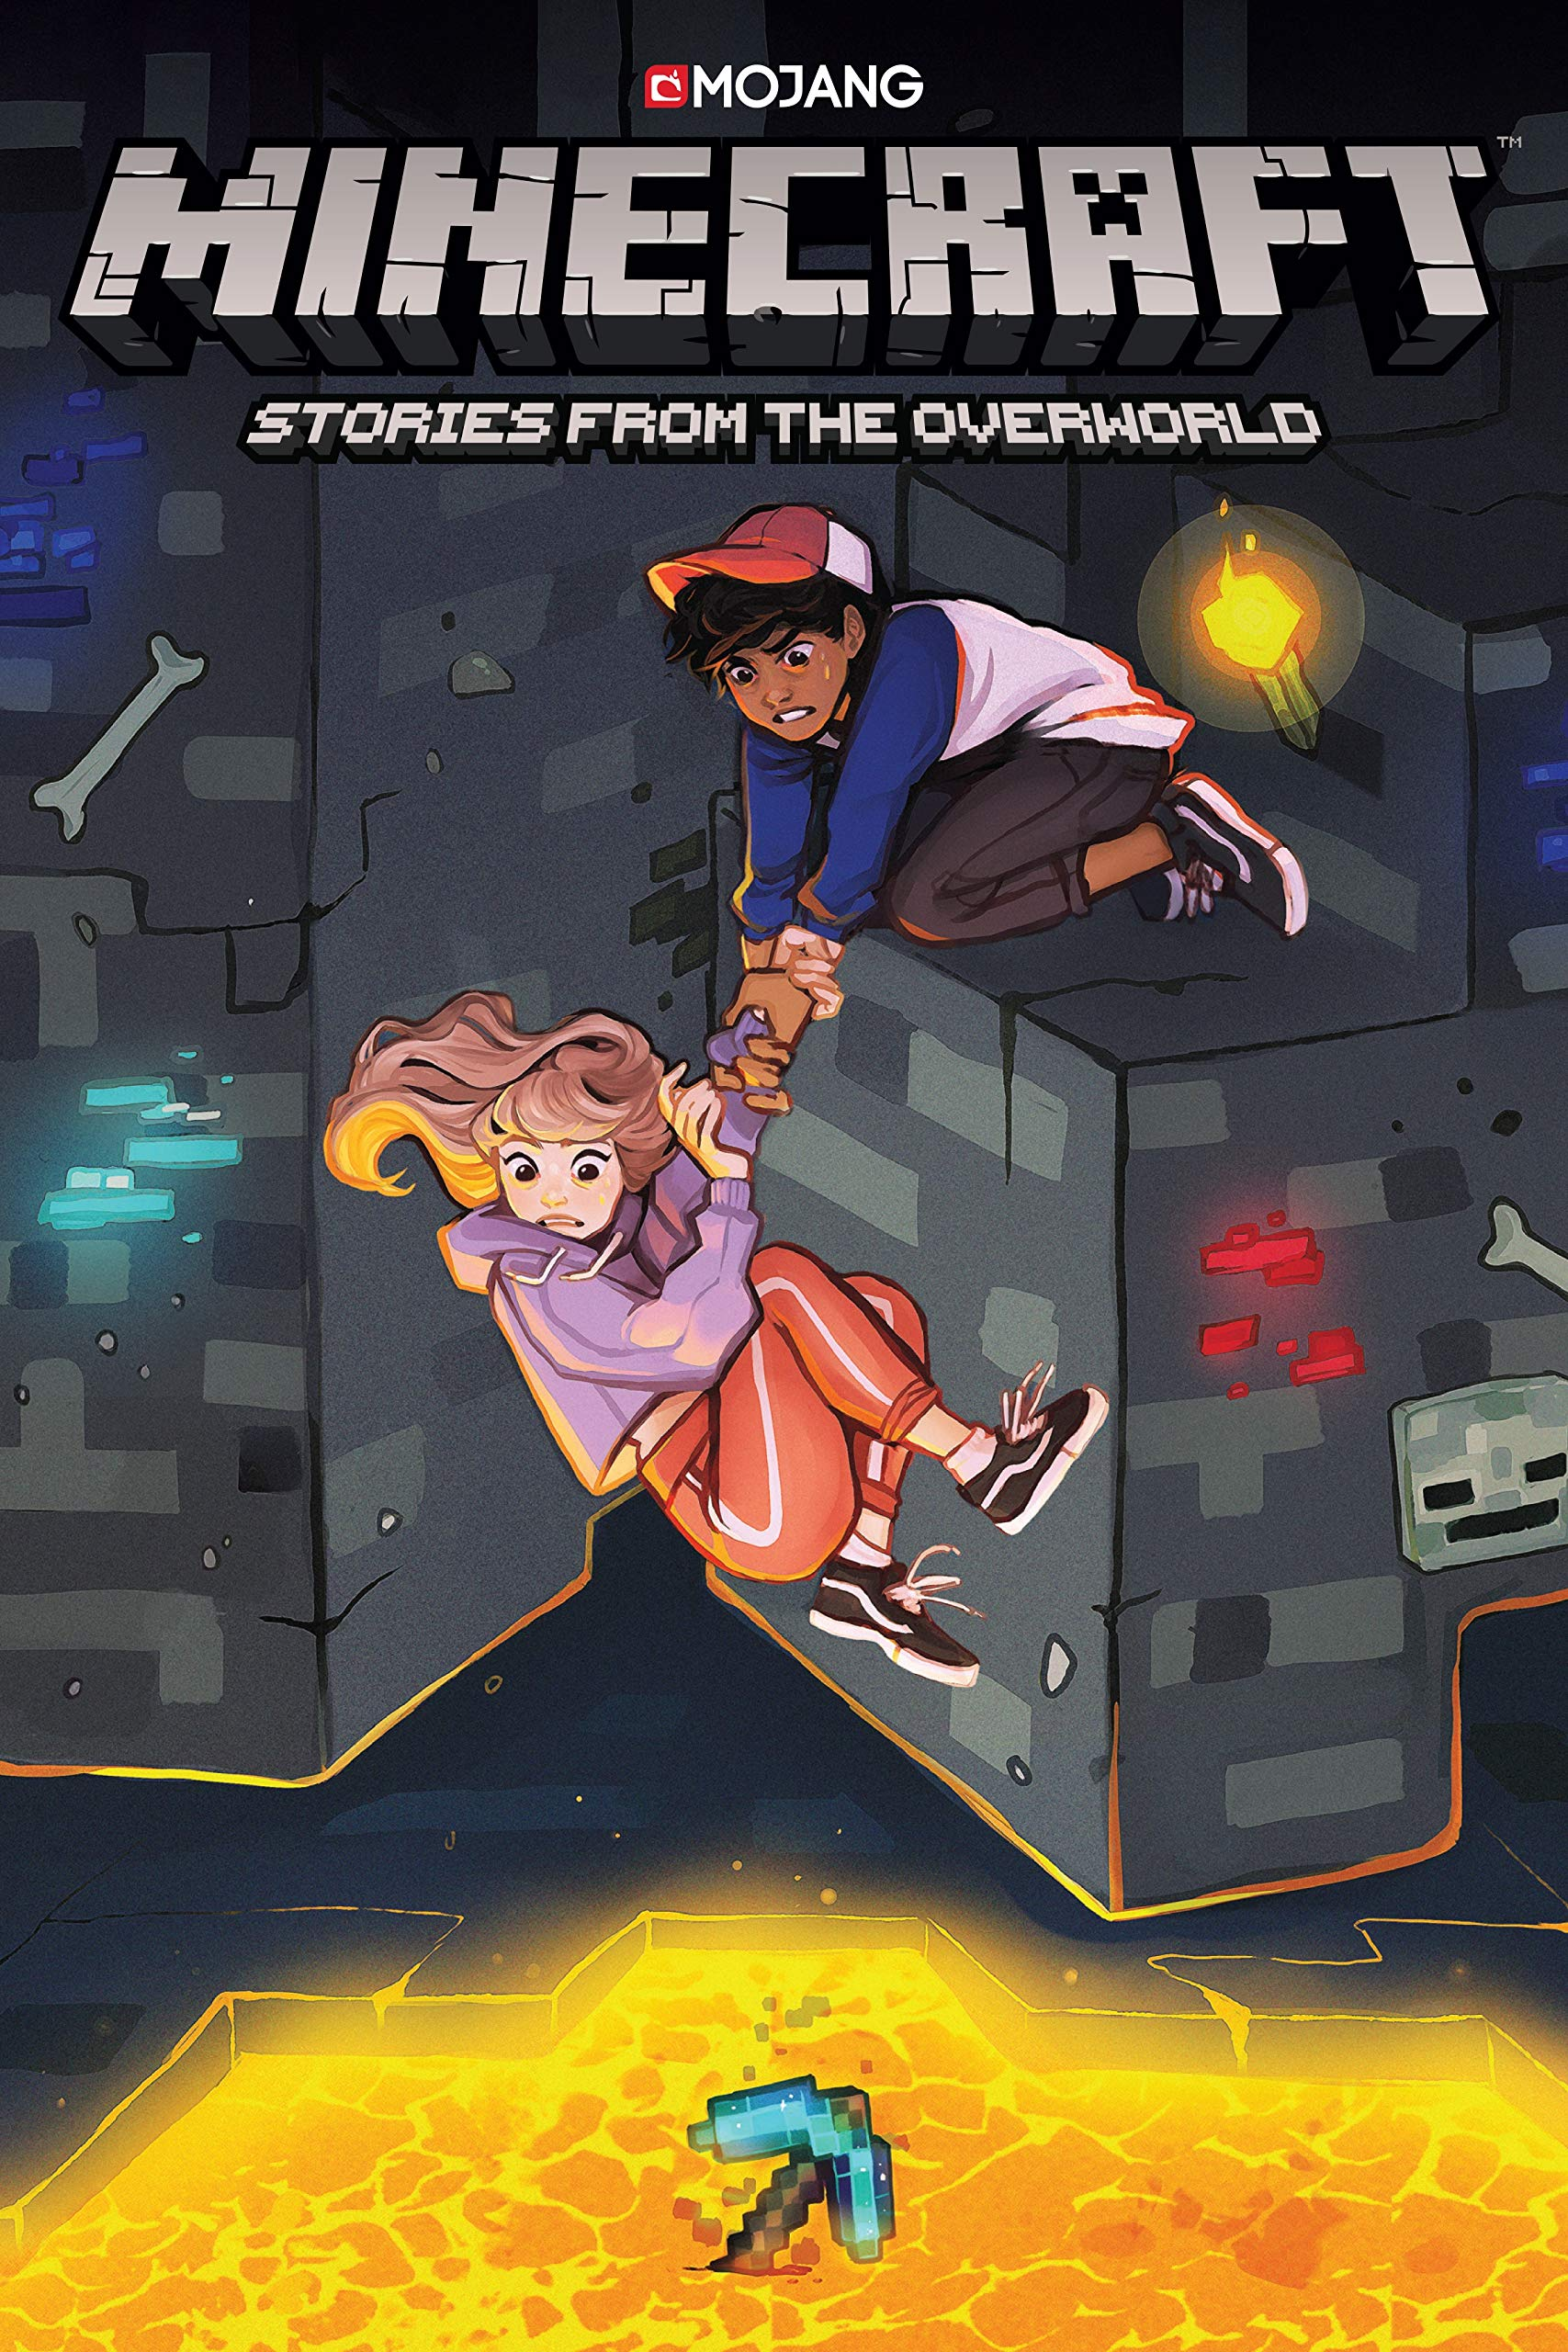 Image OfMinecraft: Stories From The Overworld